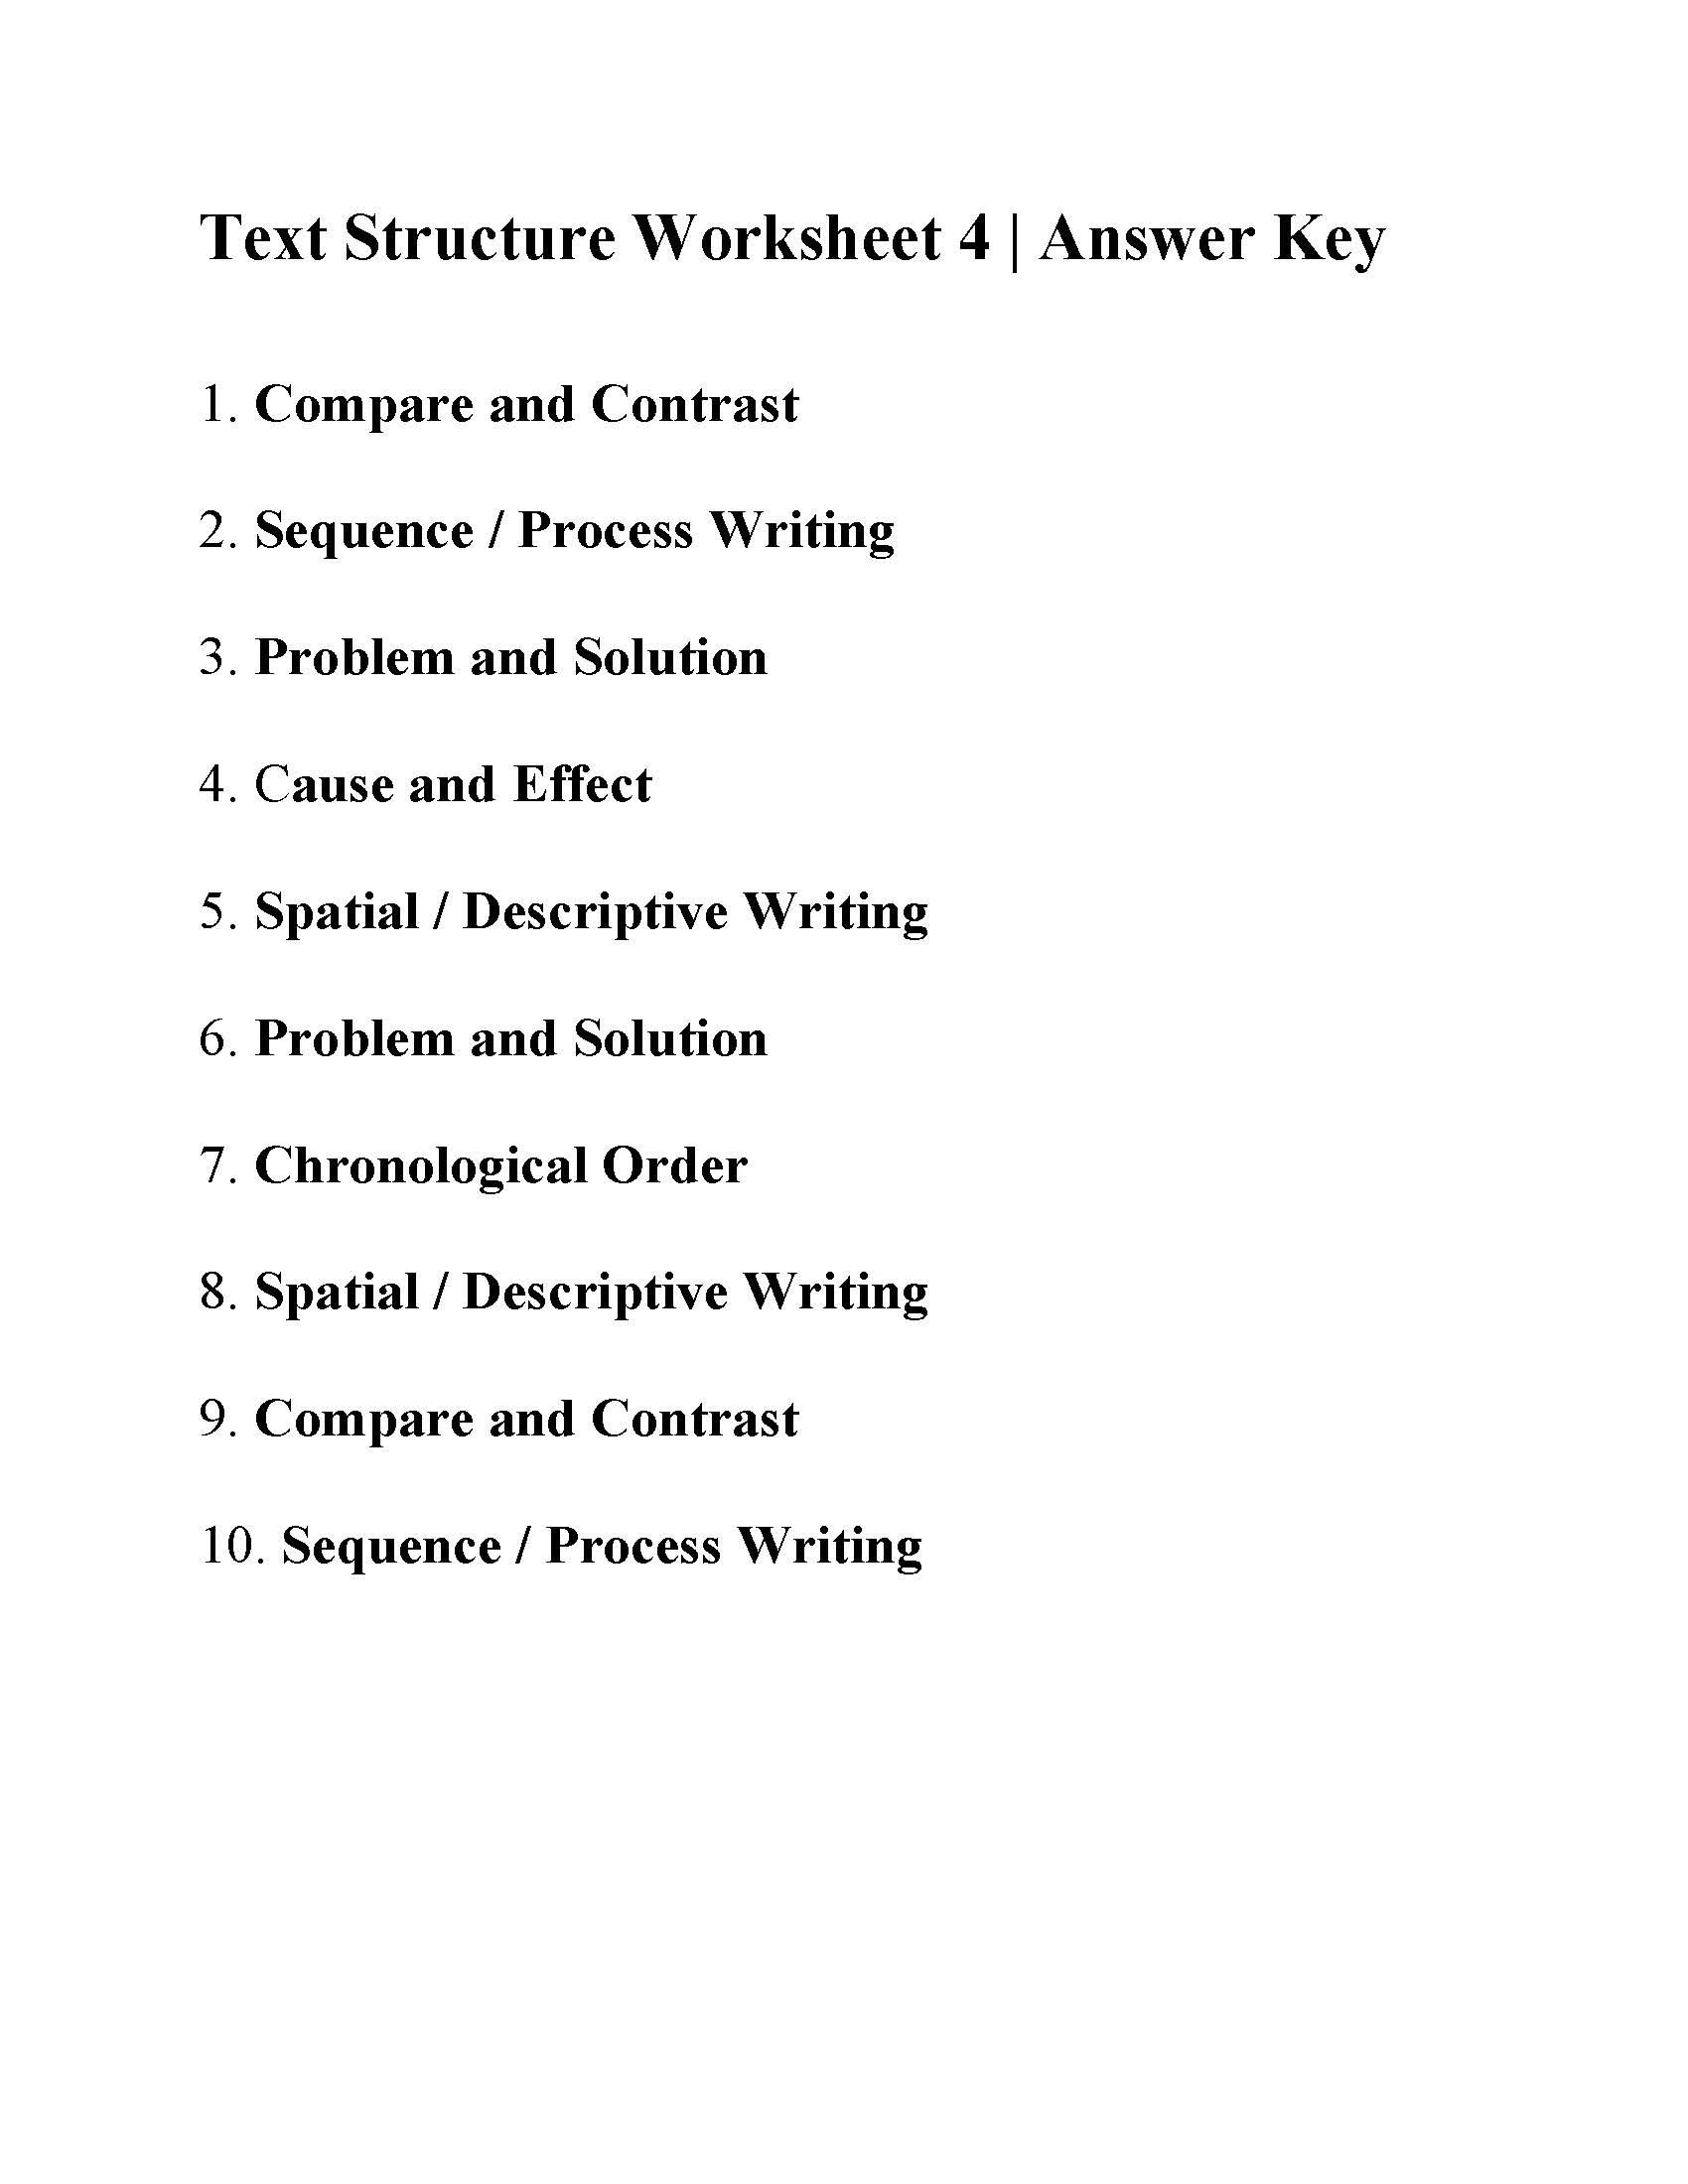 Text Structure Worksheets Grade 4 Text Structure Worksheet 4